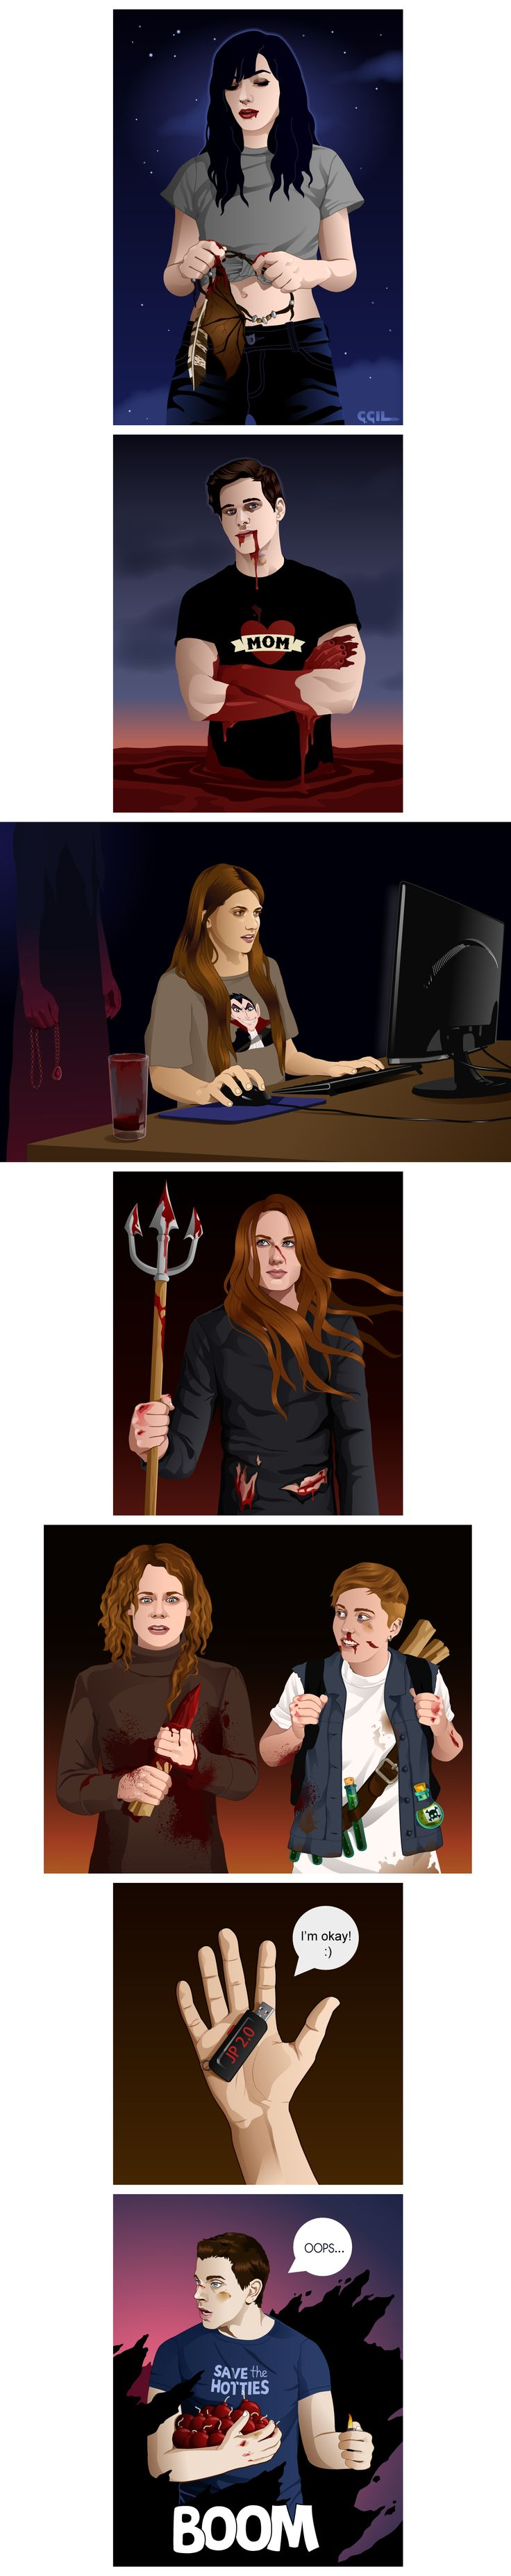 This is cool. :) Will's is a little freaky. And the Dean lurking behind Laura with the possession necklace is super creepy.